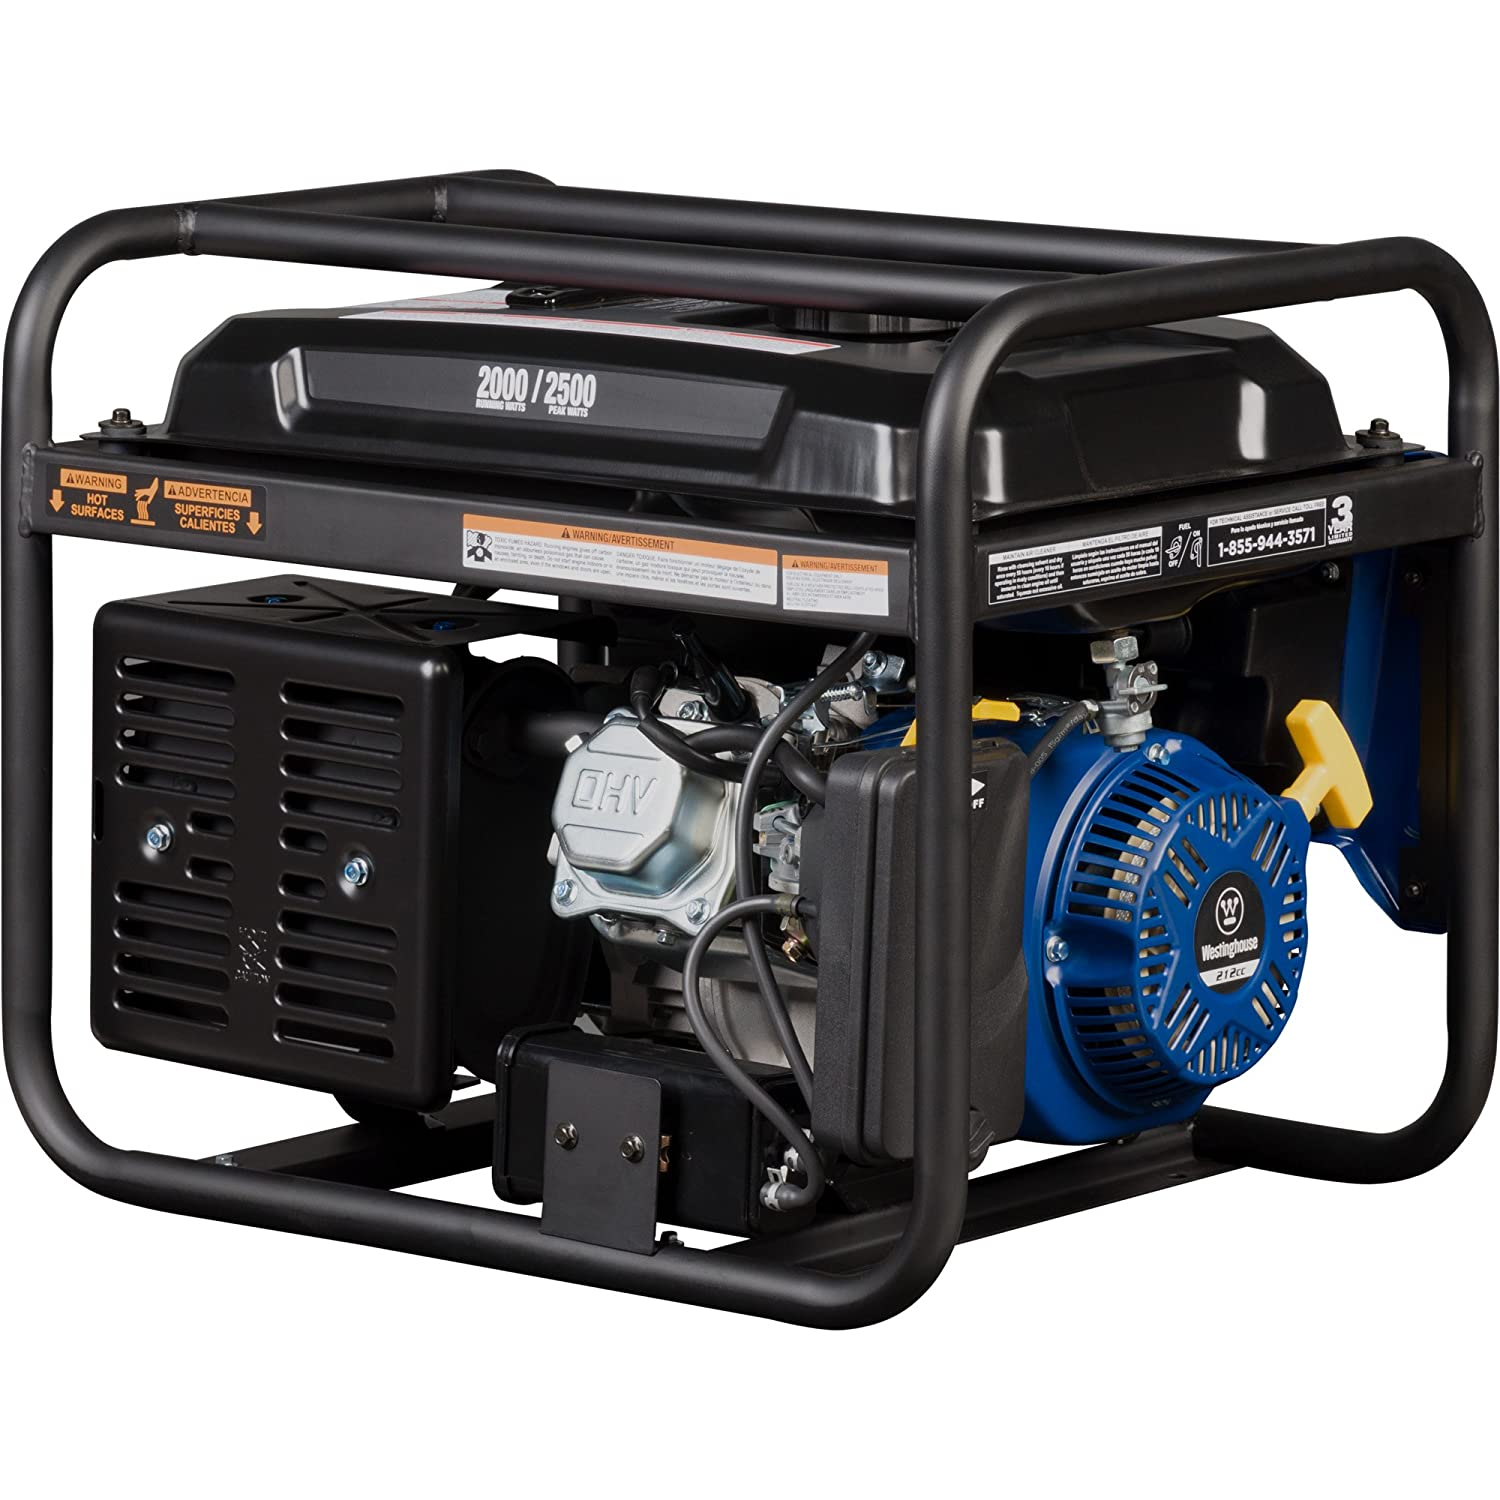 Westinghouse WGen2000 Portable Generator – 2000 Rated Watts 2500 Peak Watts – Gas Powered – CARB Compliant